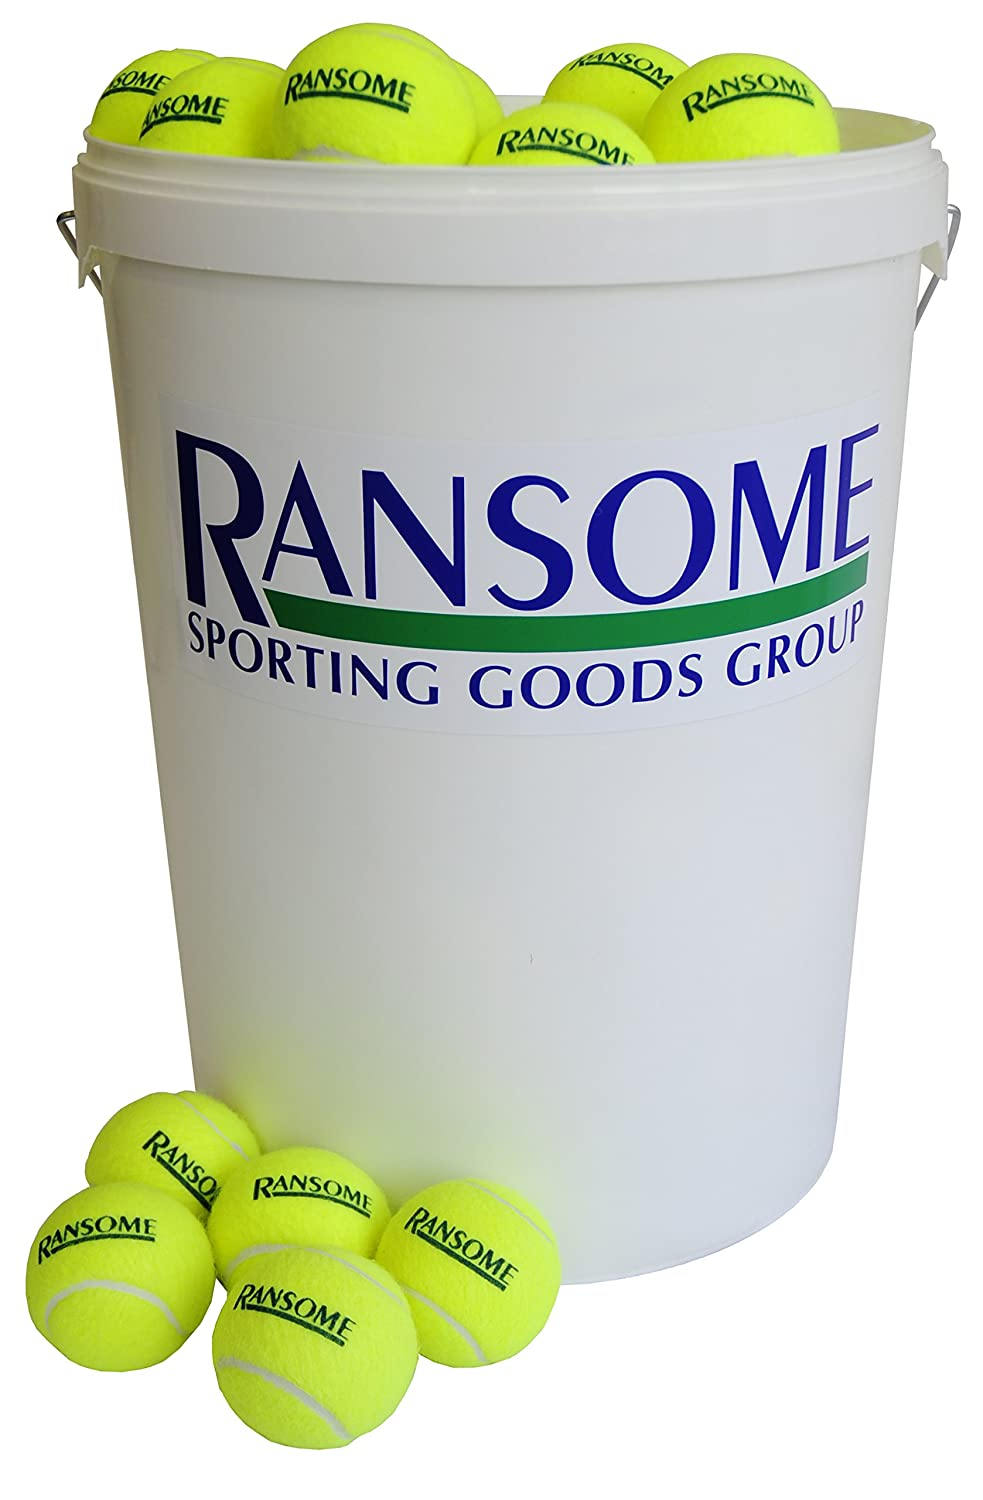 Ransome Bucket of 96 Tennis Balls Ransome Sporting Goods 7402